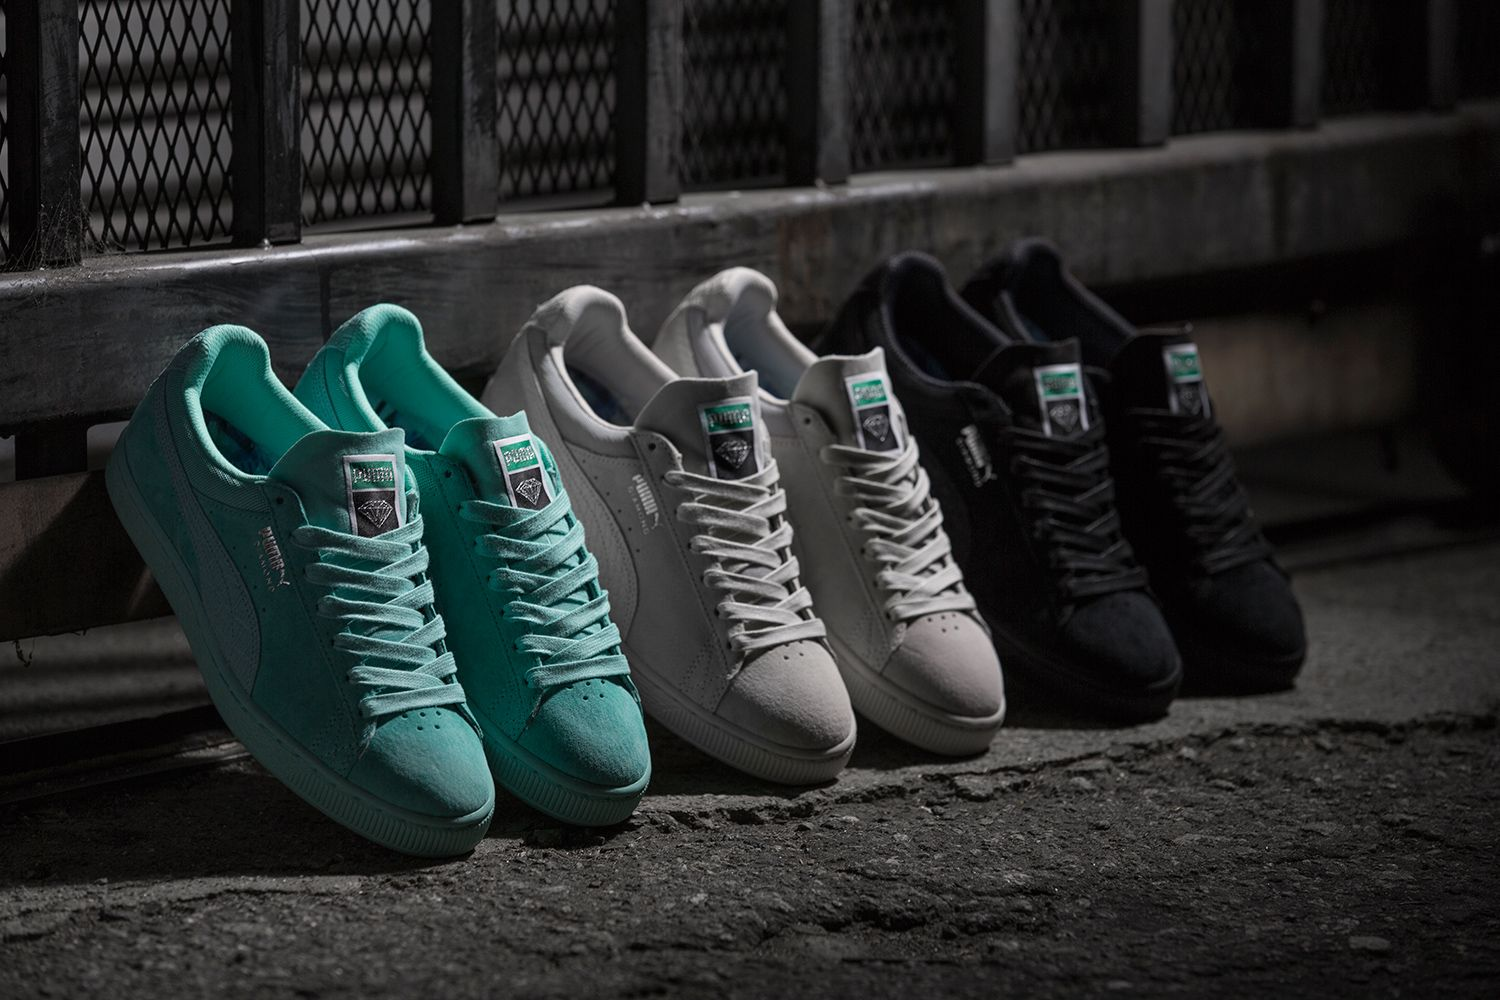 PUMA and Diamond Supply Co. Are Back With Another Sneaker